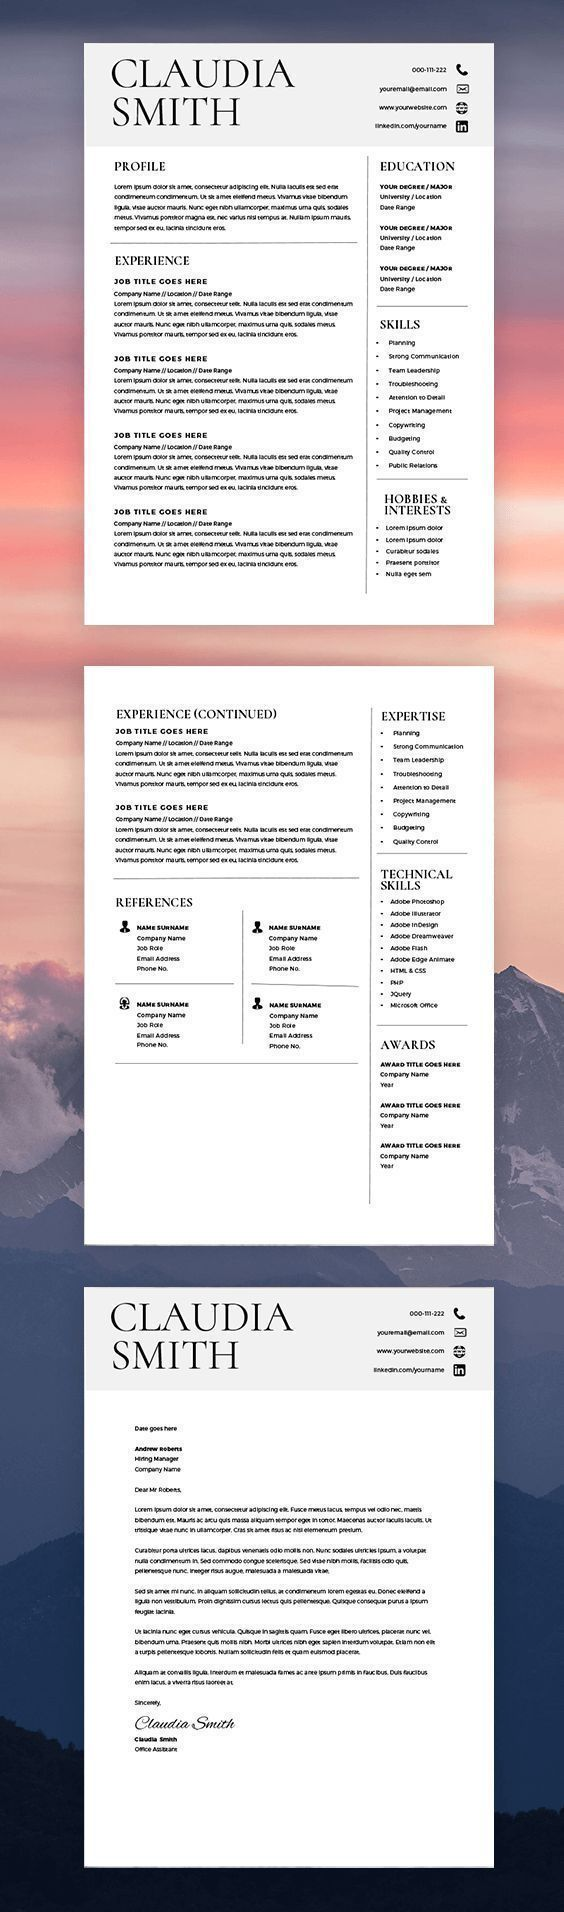 business letter format word 2010%0A Medical Resume Template Word  Minimalist Resume with Cover Letter  Resume Template  Word Mac  Instant Download  Resume Template Word Modern